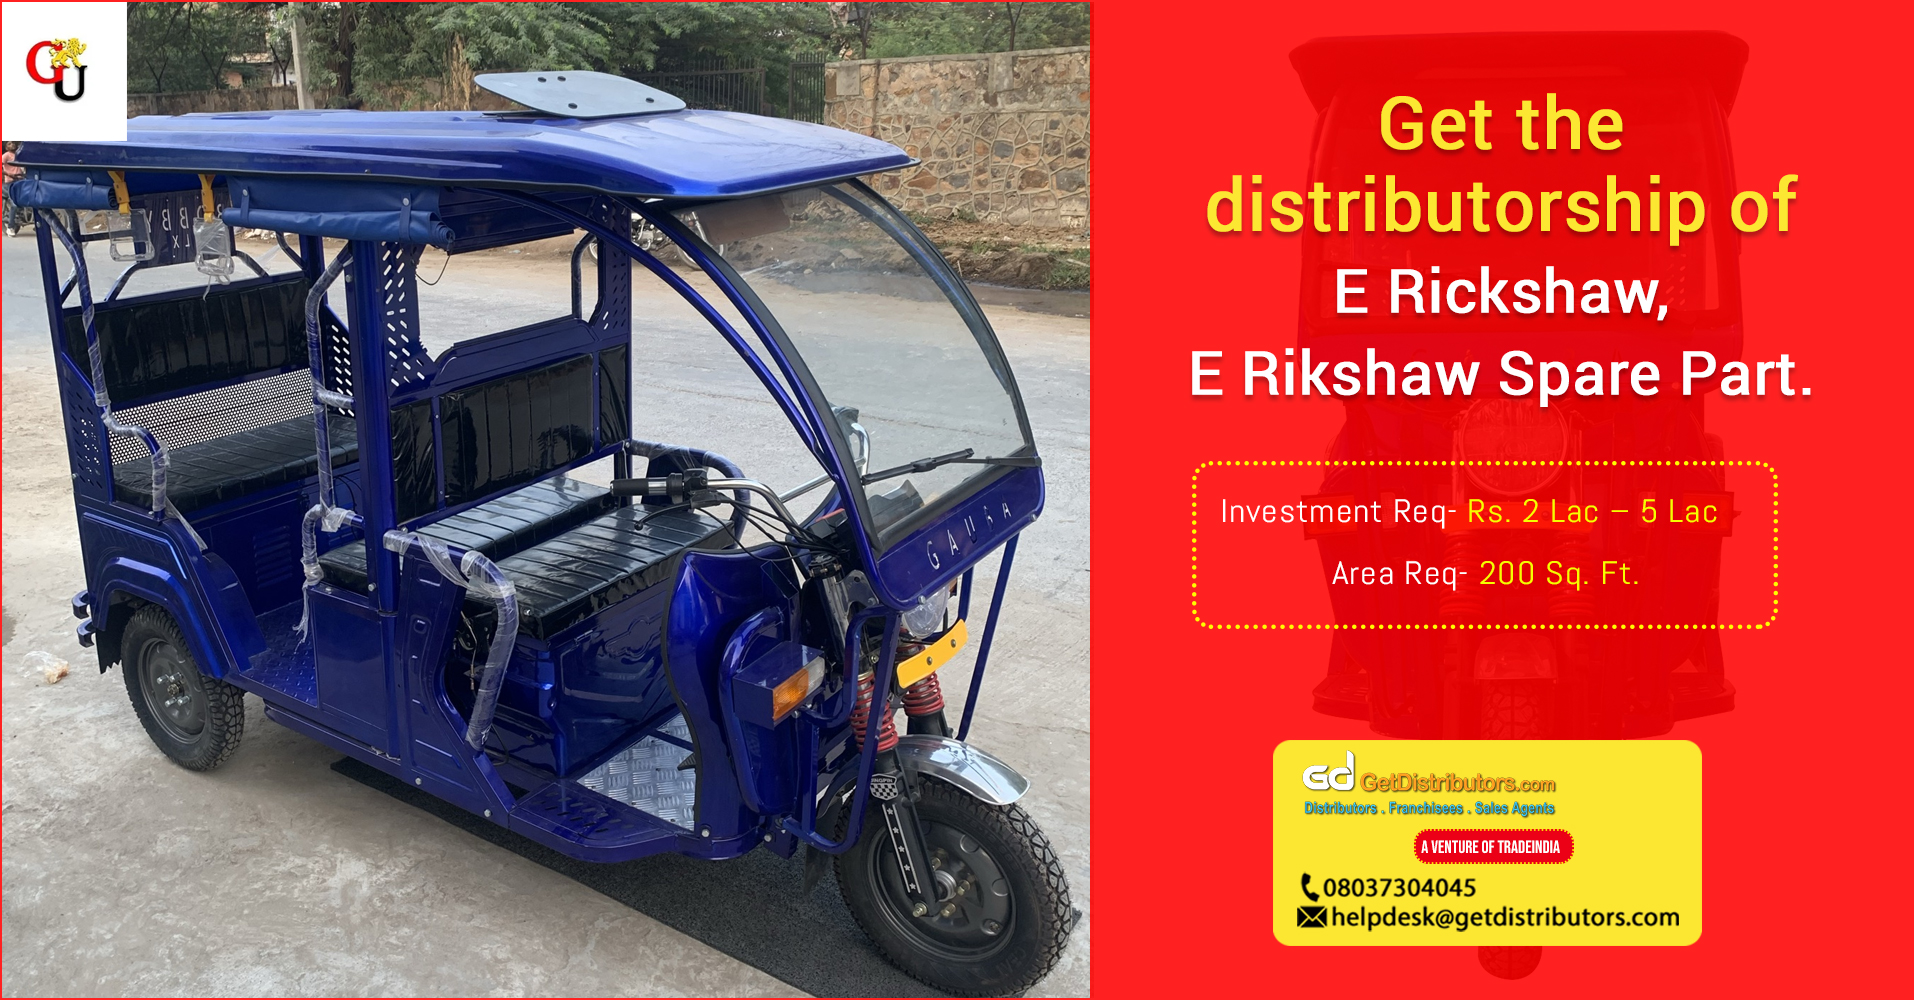 Reliable & cost effective E-Rickshaws for distribution